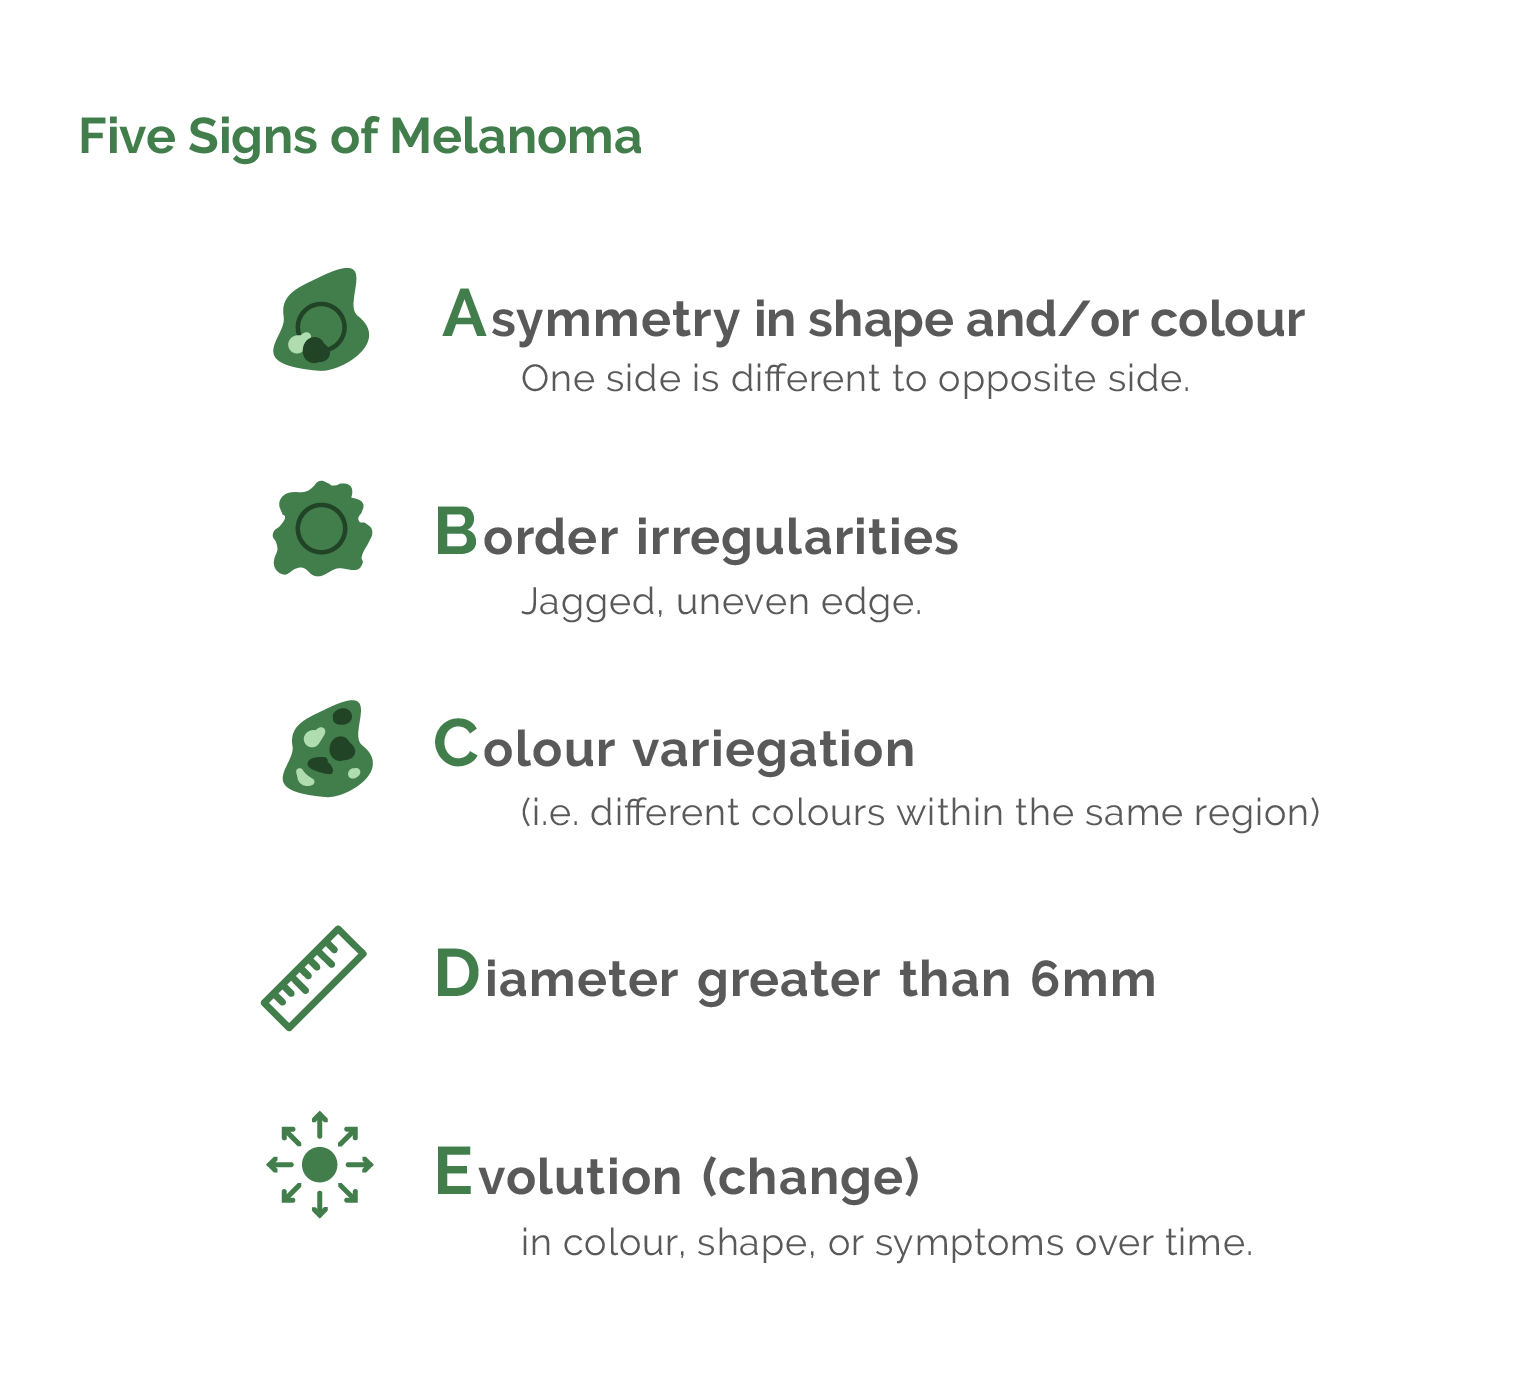 Five Signs of Melanoma